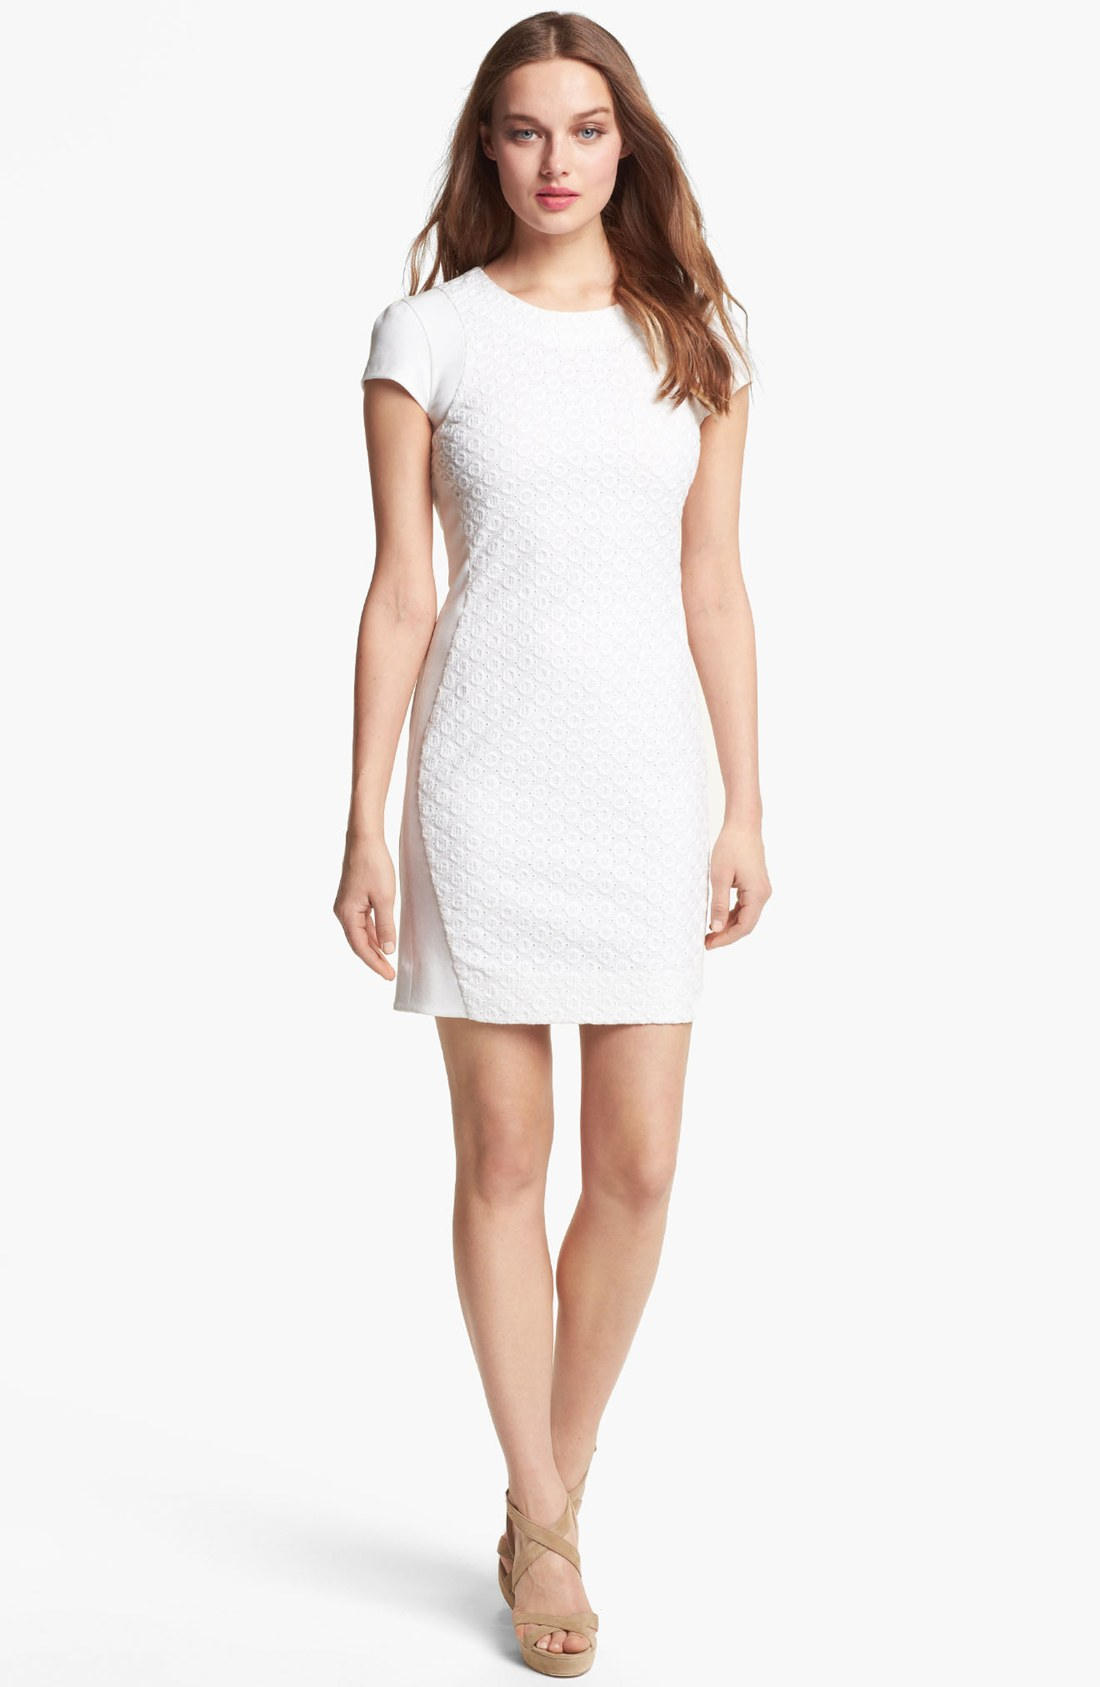 Diane von Furstenberg \'Pele Eyelet\' Knit Sheath Dress ( Size 8) | eBay